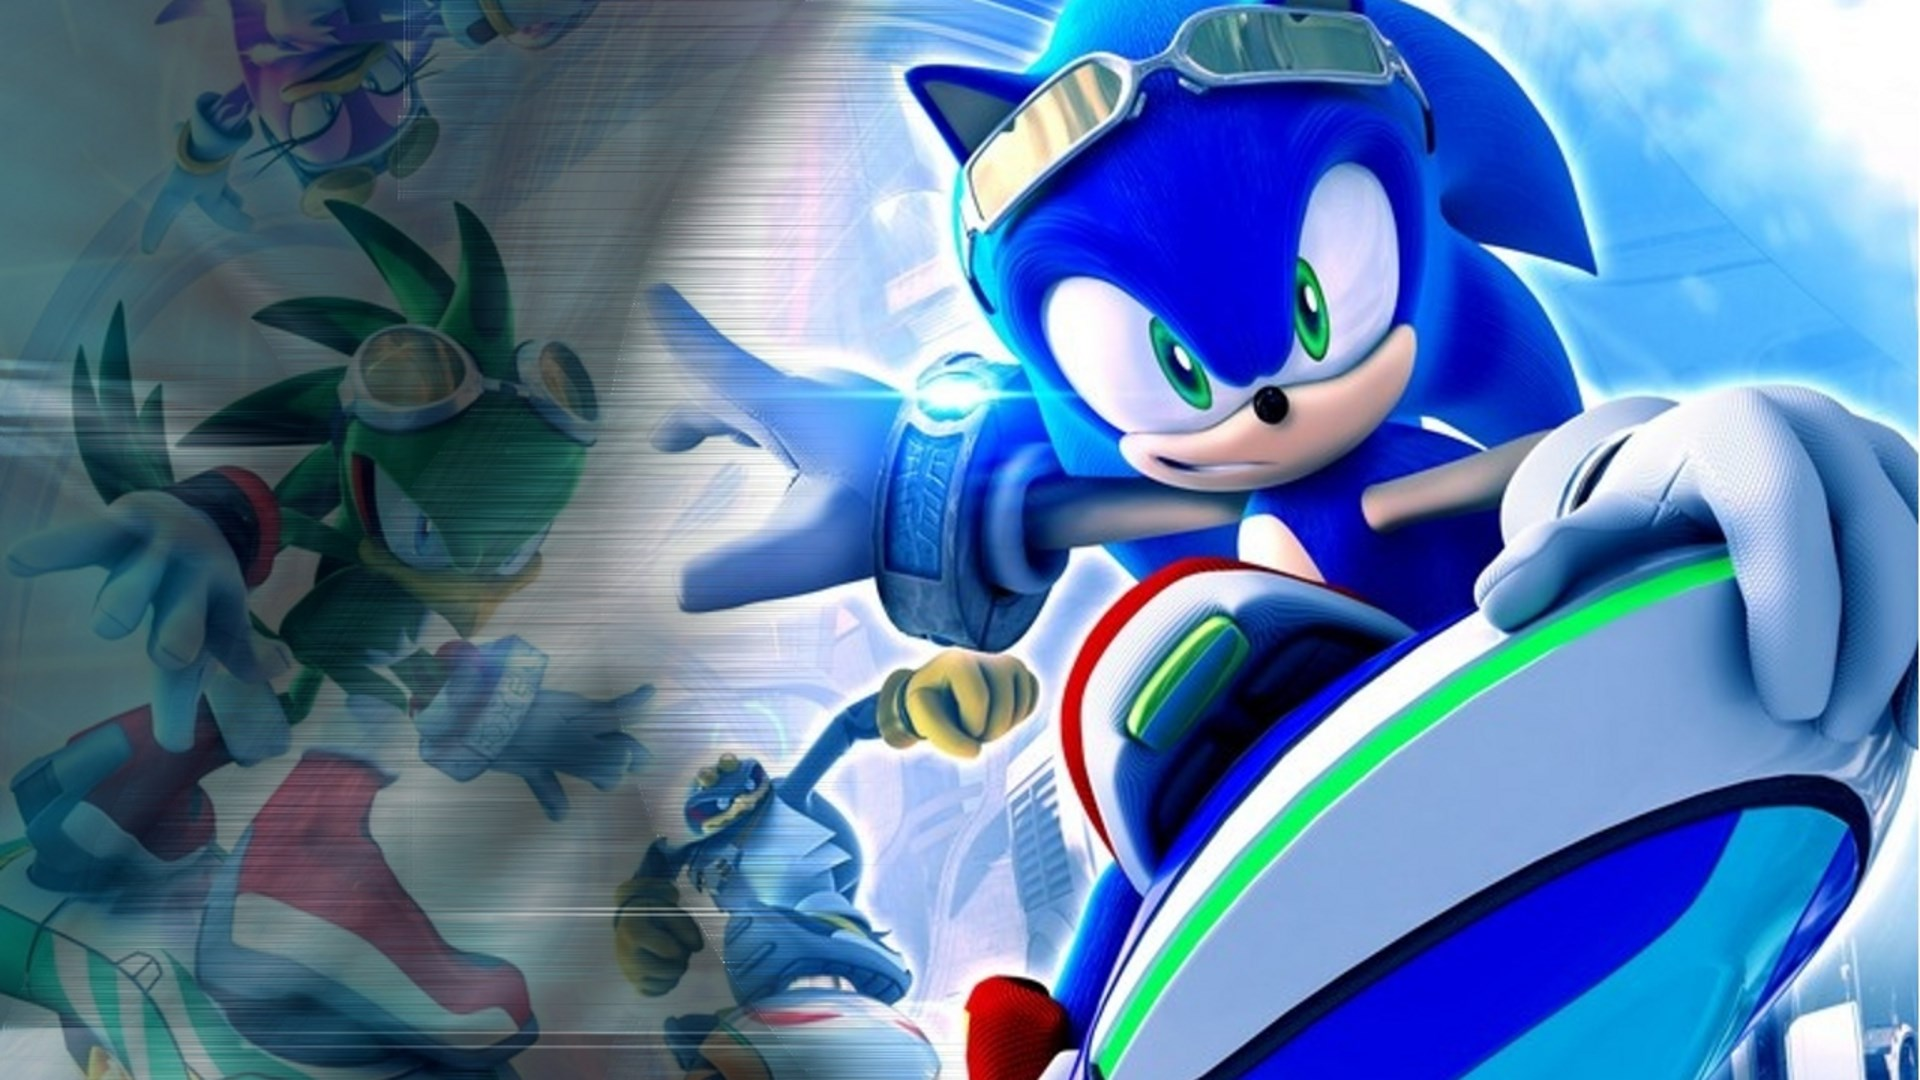 free-screensaver-for-sonic-riders-by-Bradley-Bishop-wallpaper-wp3605916-1